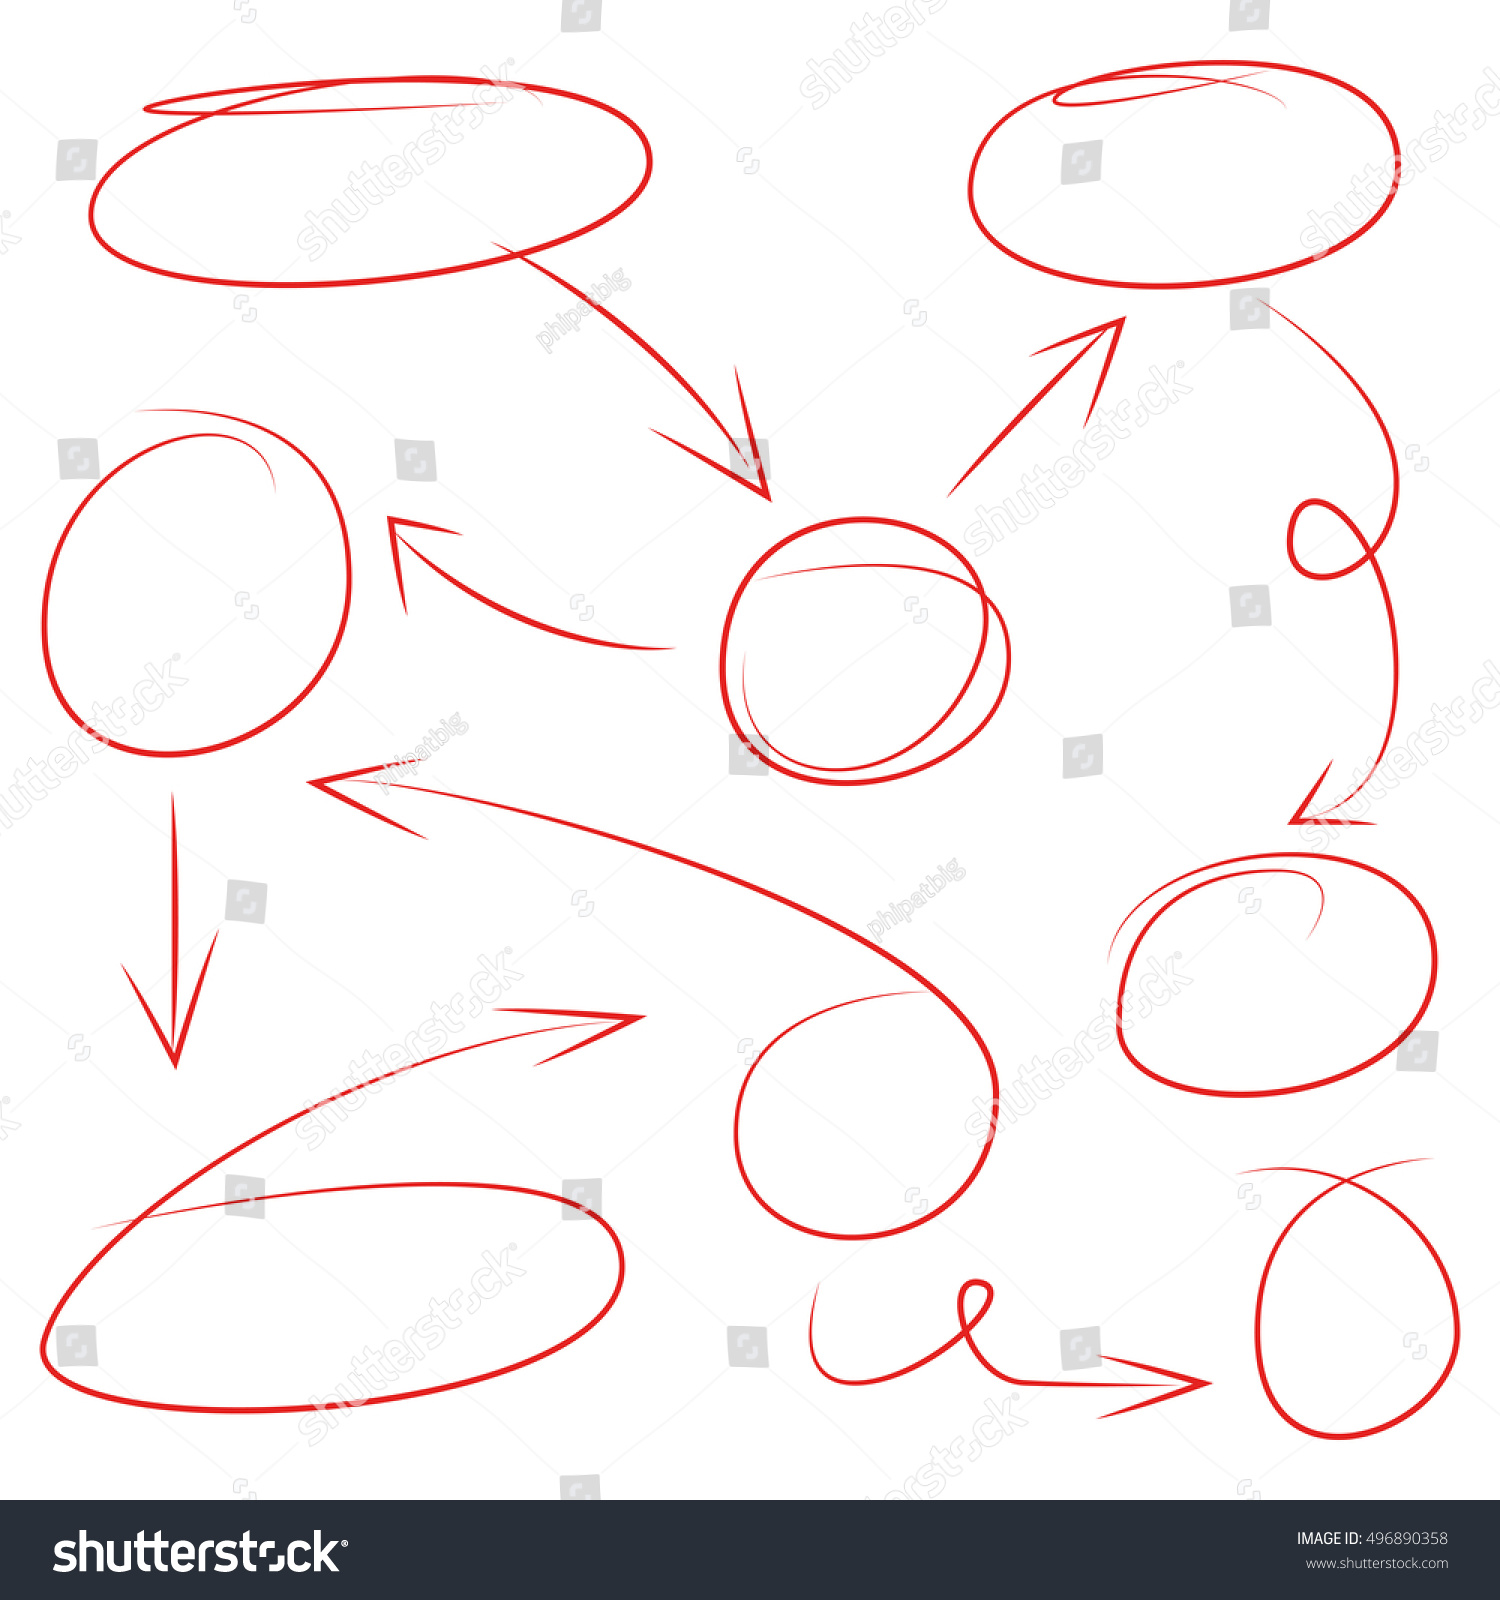 Arrows circles abstract doodle flowchart design stock vector arrows circles and abstract doodle for flowchart design nvjuhfo Gallery